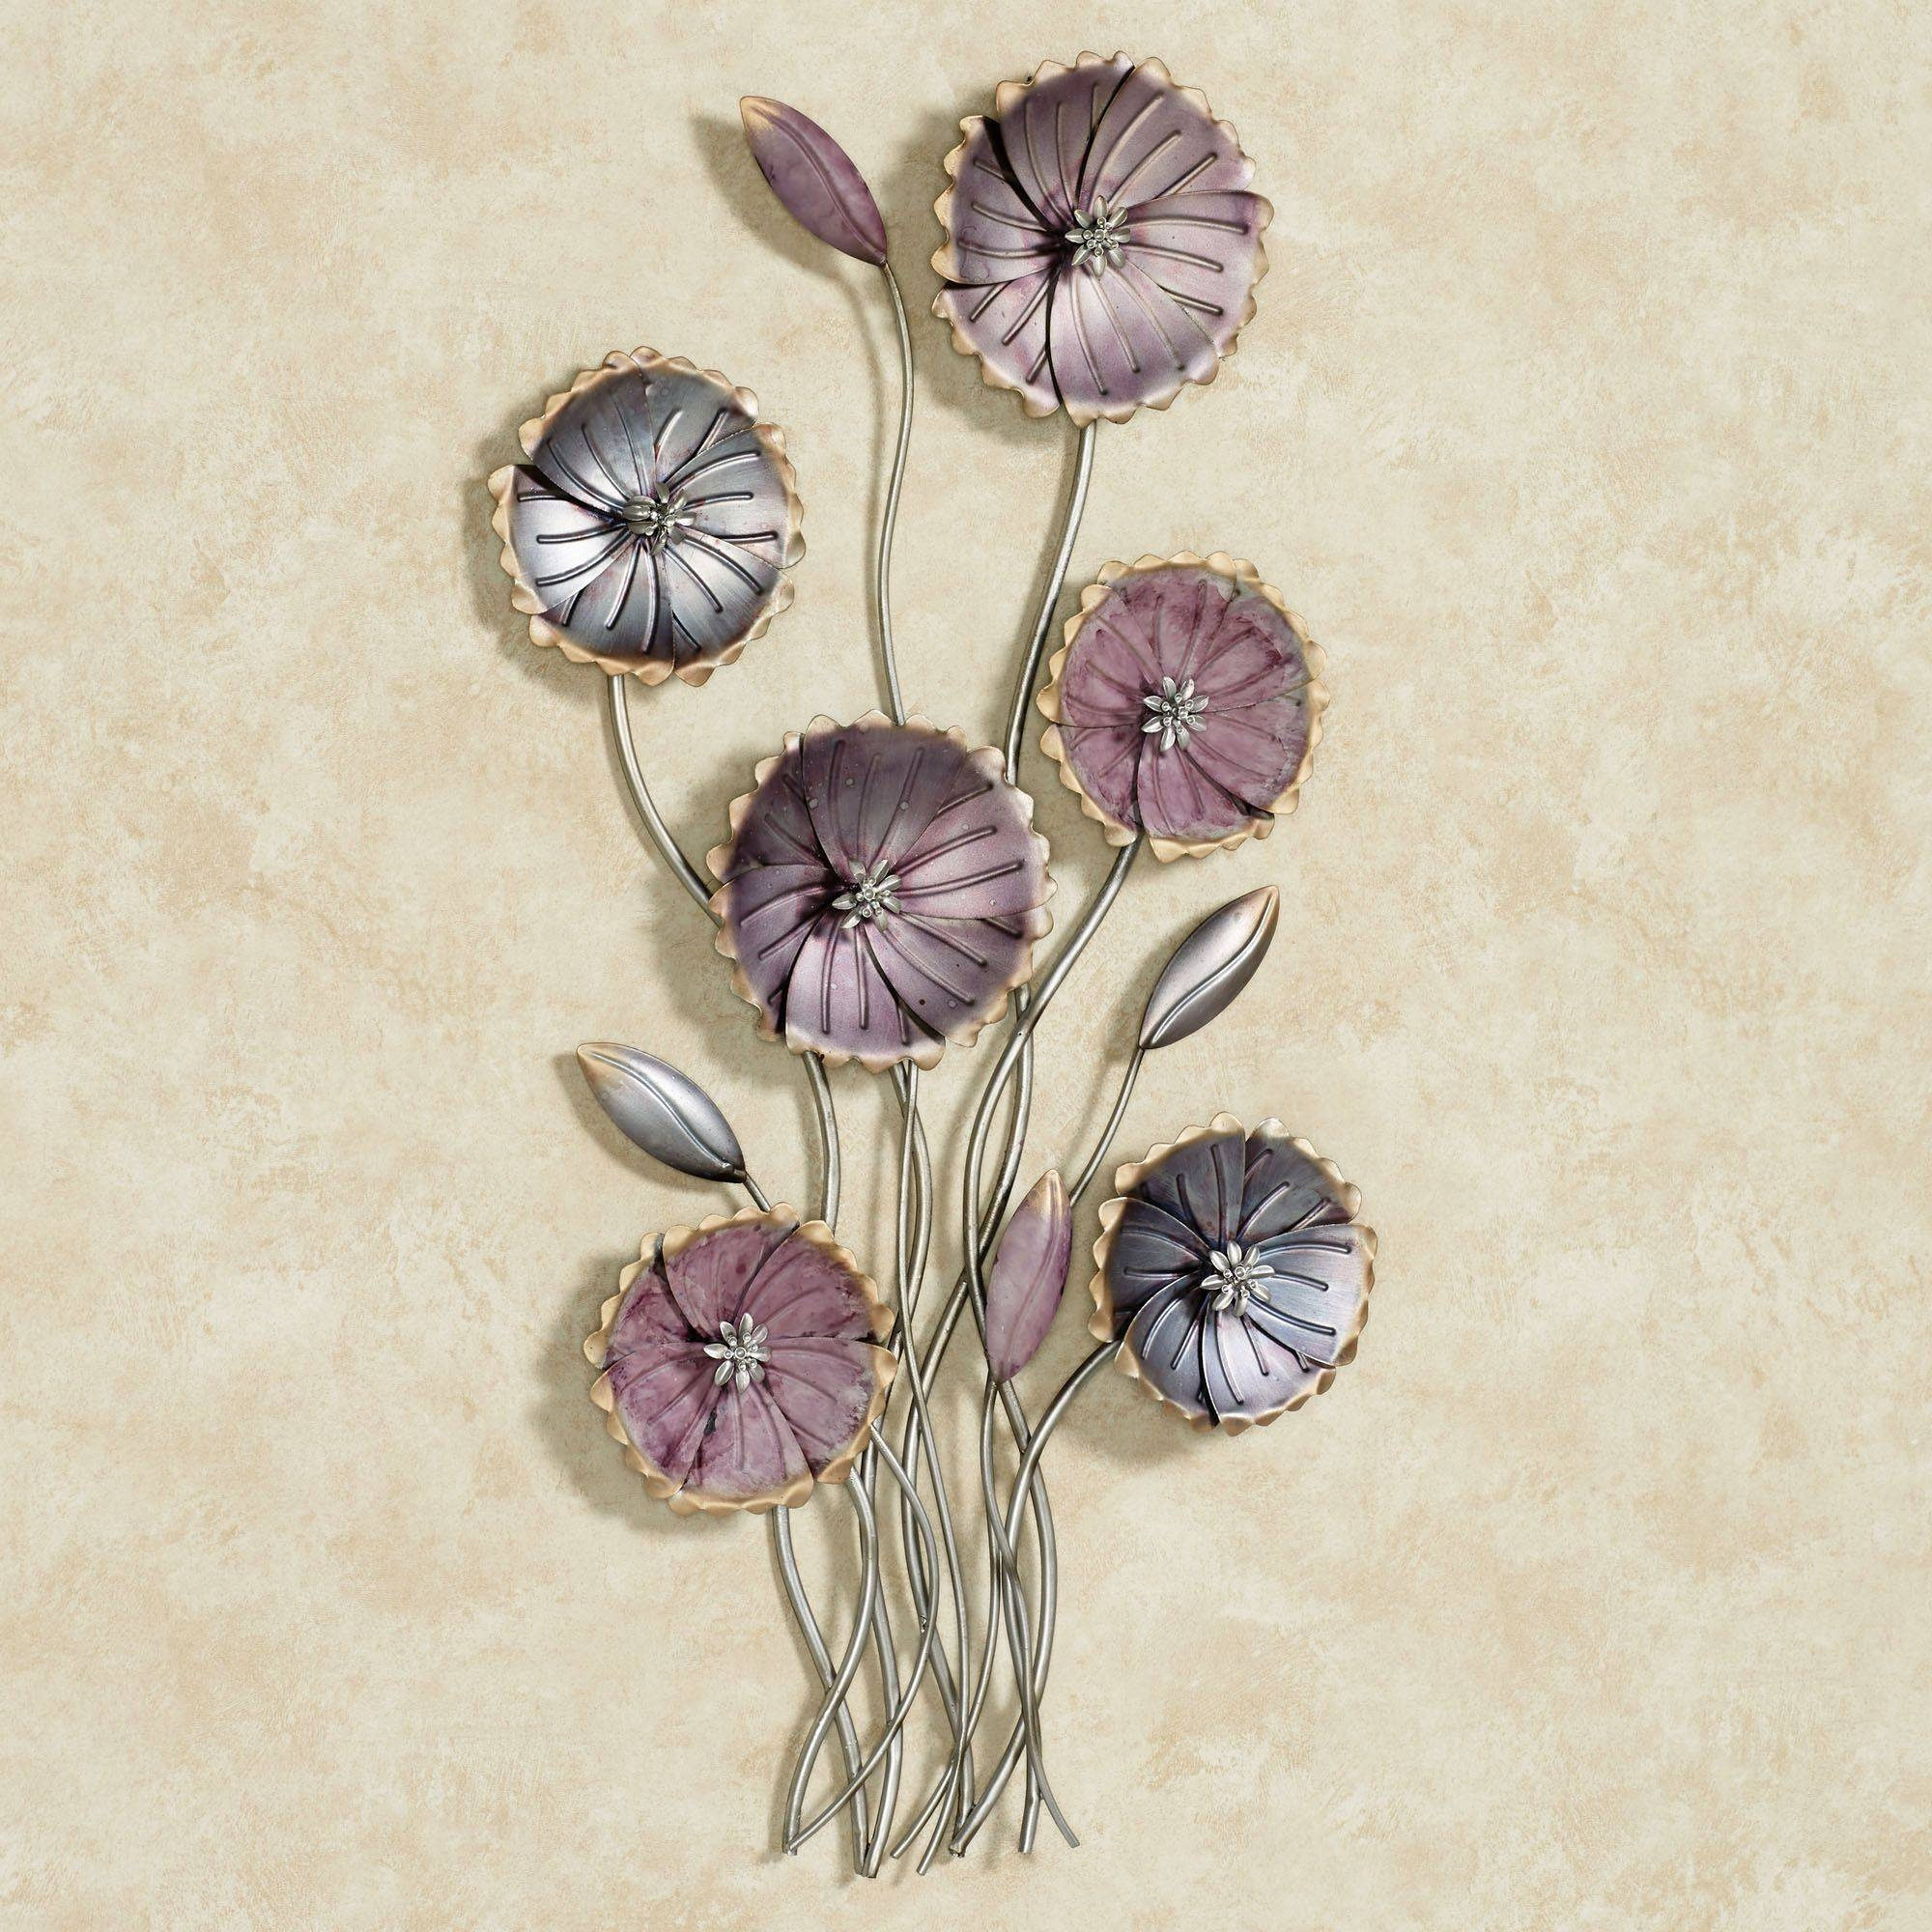 41 Silver Metal Wall Art Flowers, Home Metal Wall Art Wall Decor Within Recent Nature Metal Wall Art (Gallery 16 of 20)